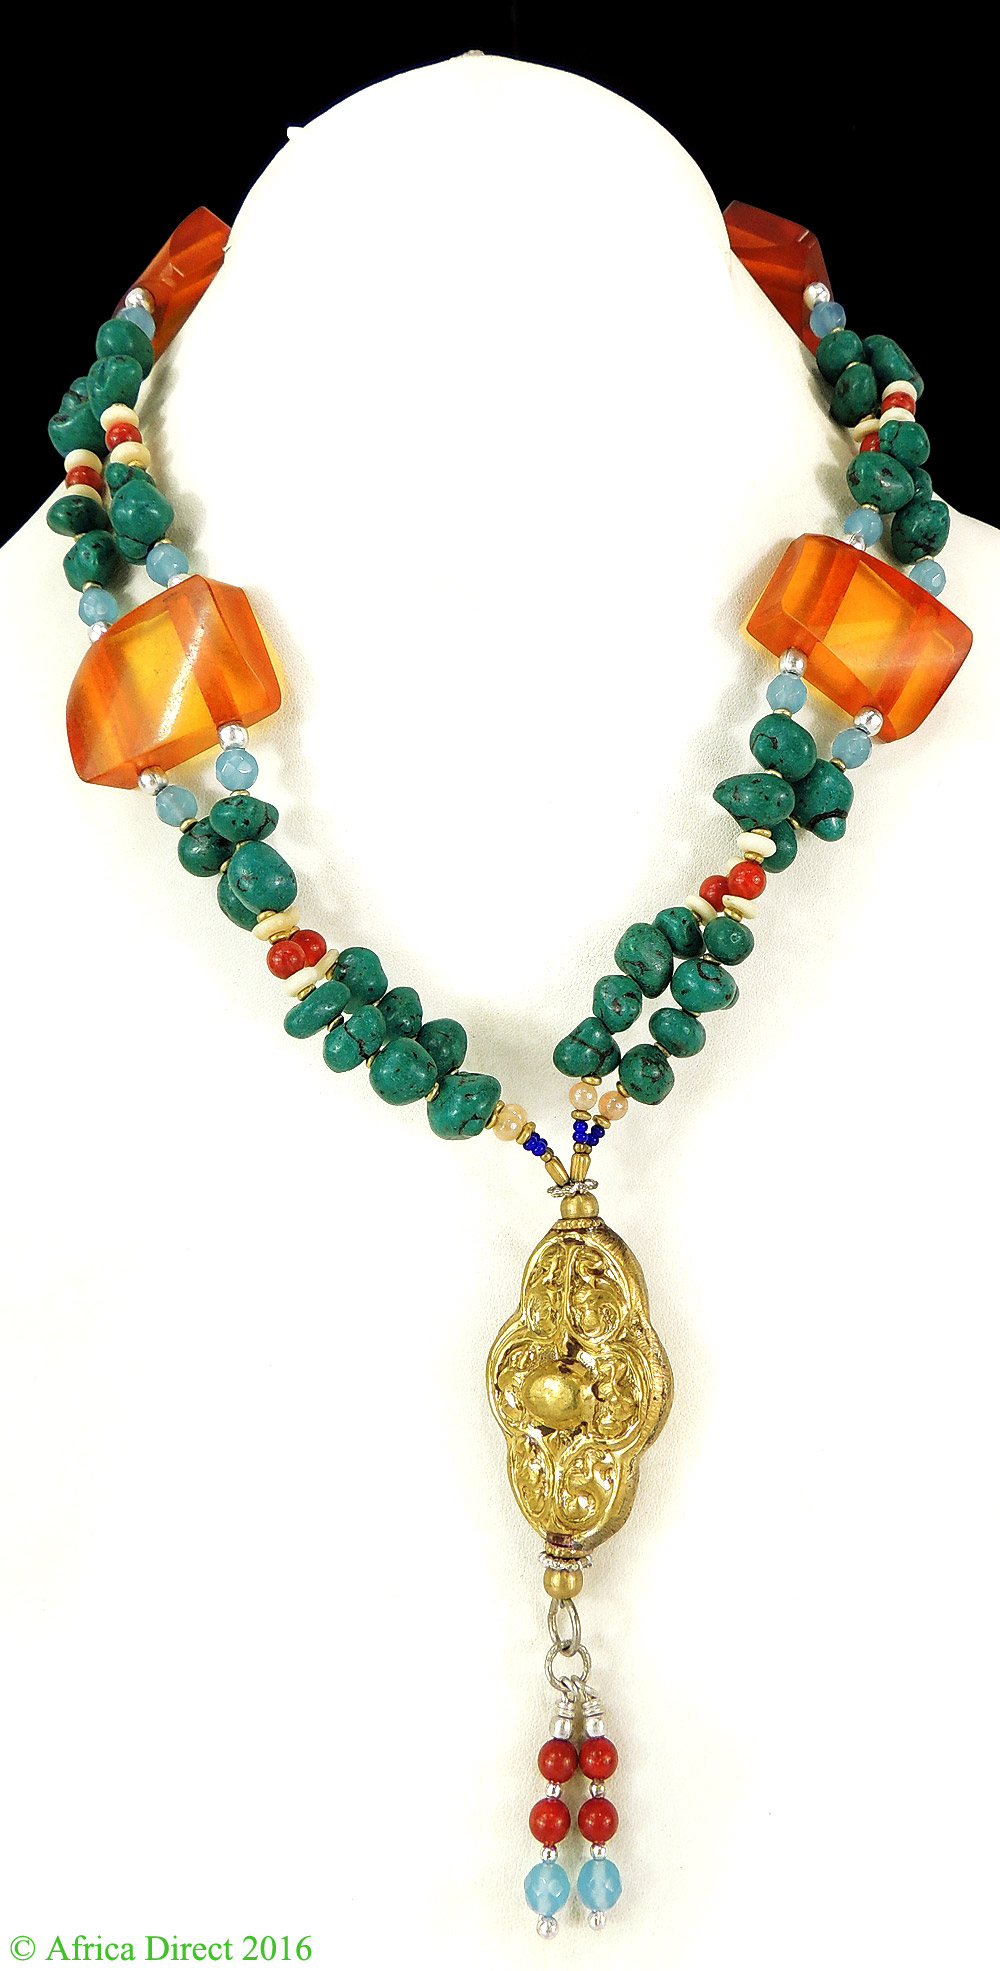 Tibetan Necklace Silver Repoussee Pendant Turquoise Beads by